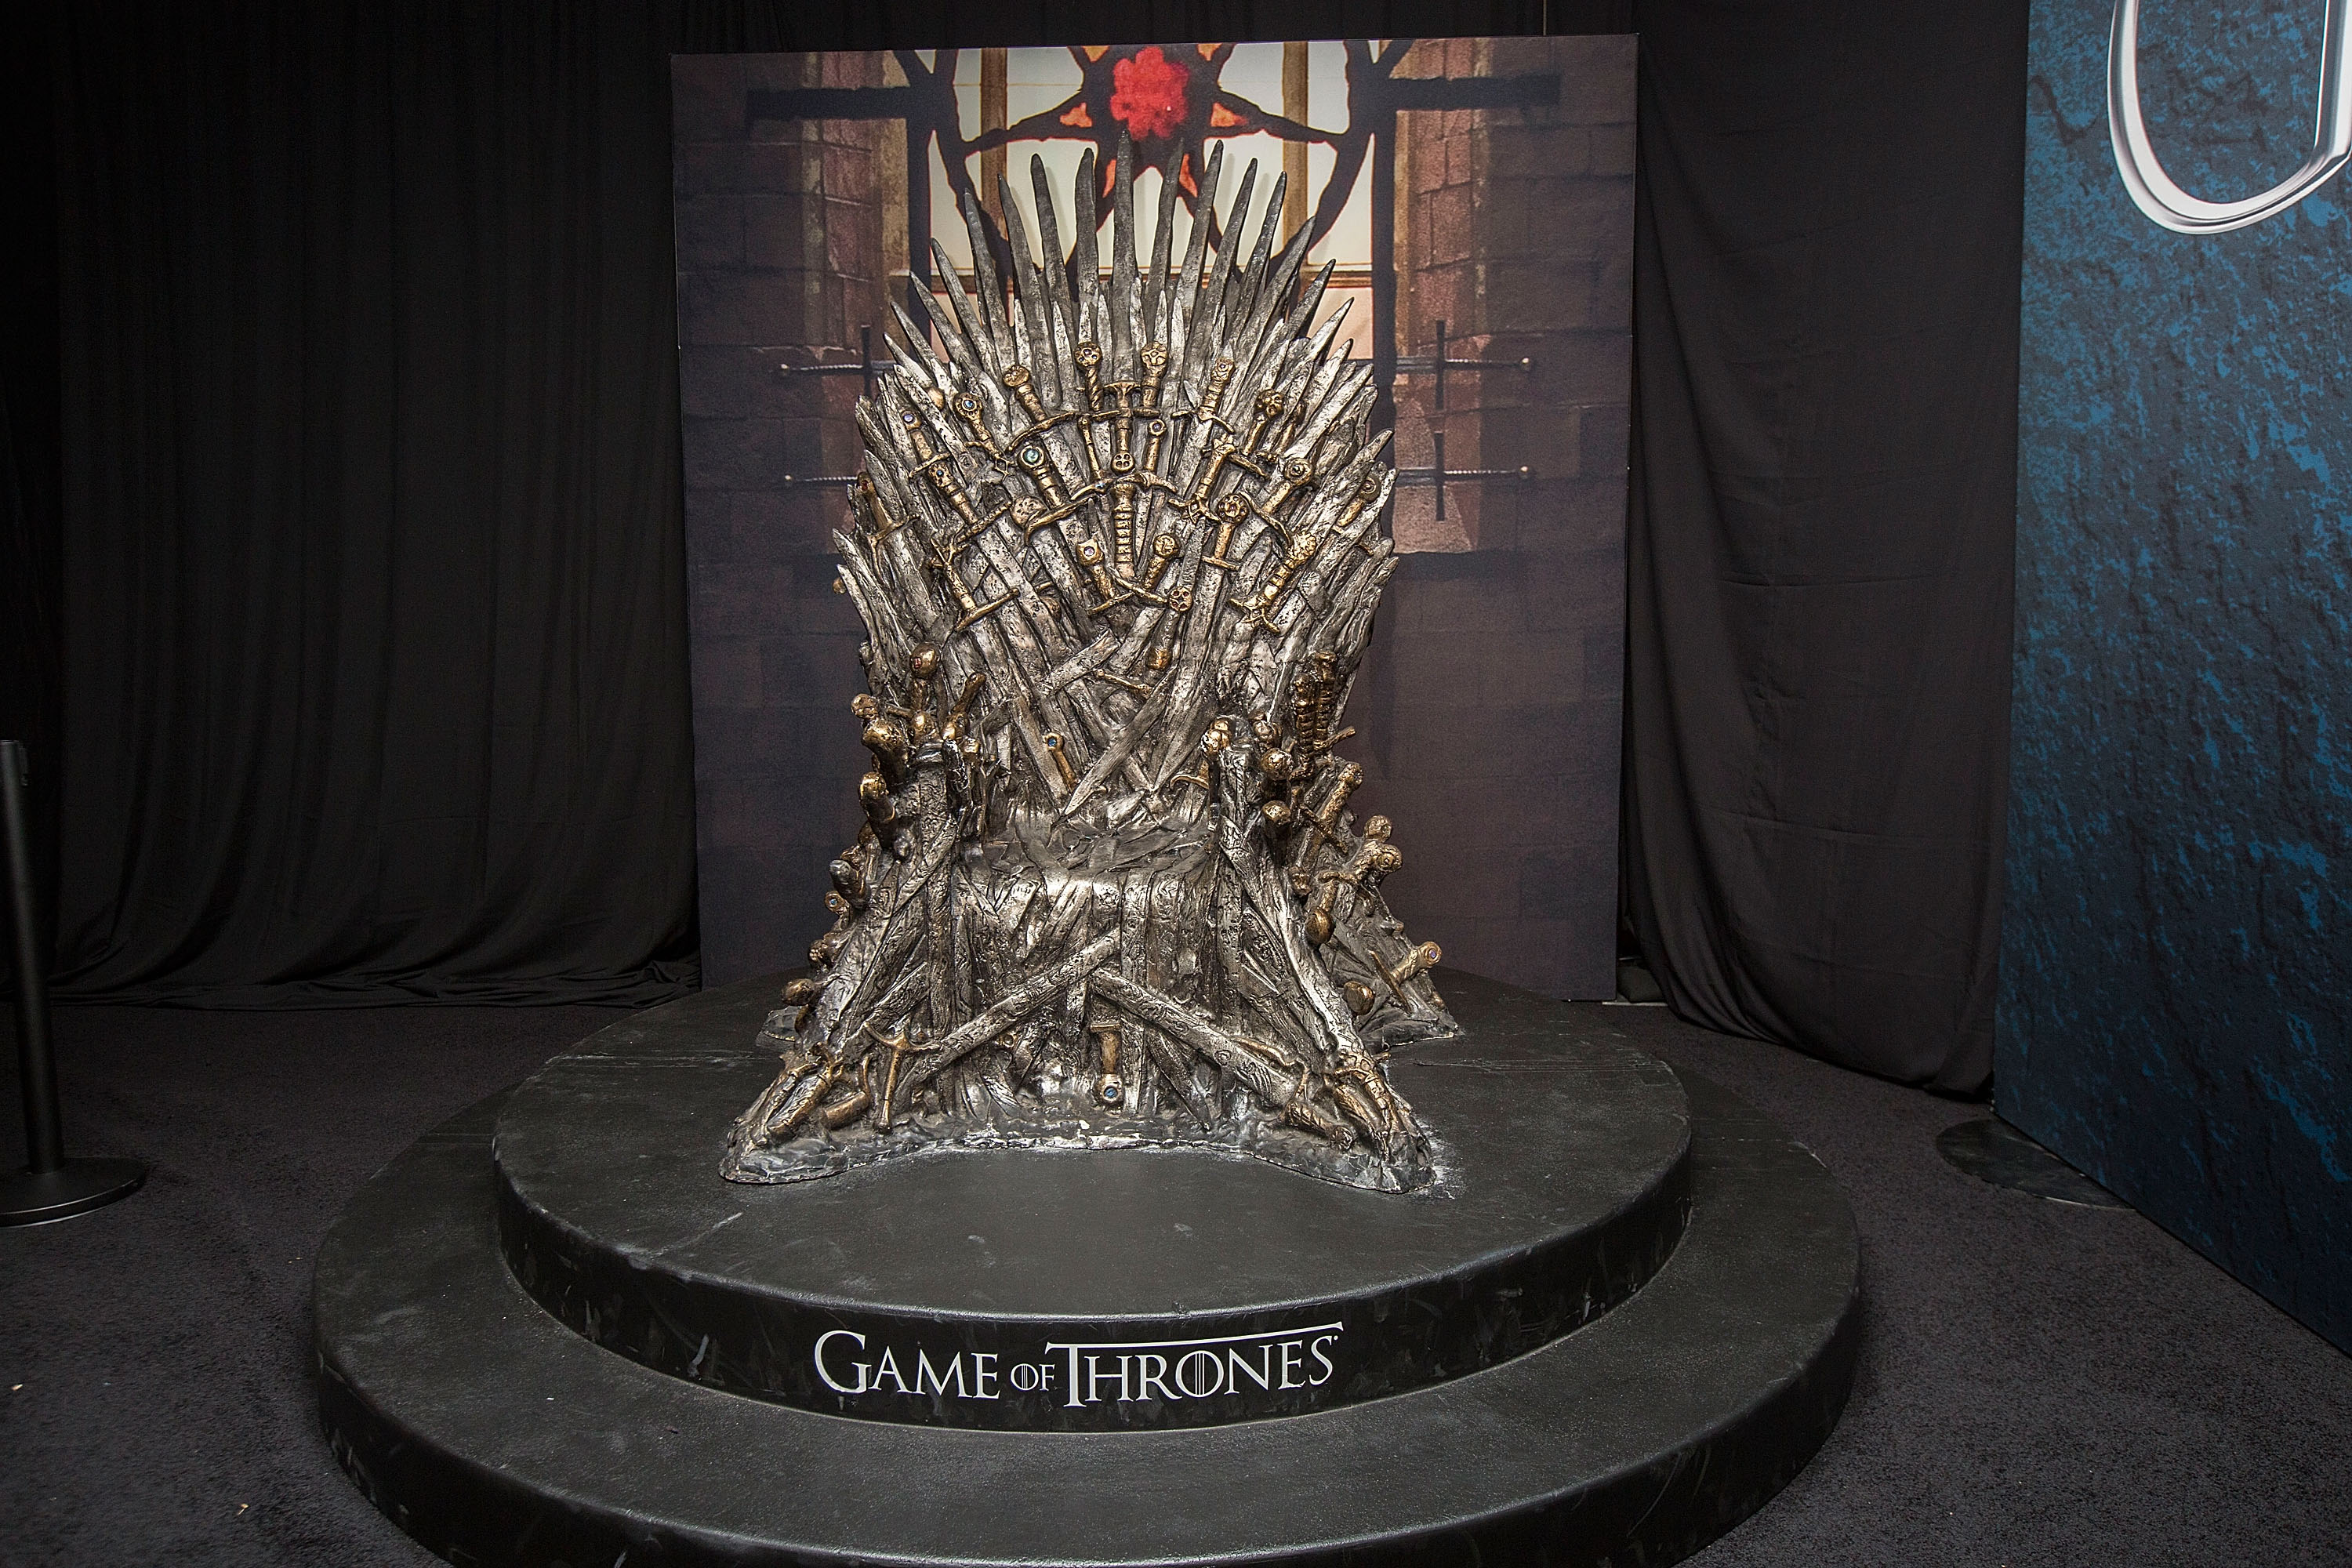 The Iron Throne display at the Hall of Faces presented by the HBO hit series  Game of Thrones  at Comic-Con International - Day 3 on July 22, 2016 in San Diego, California.